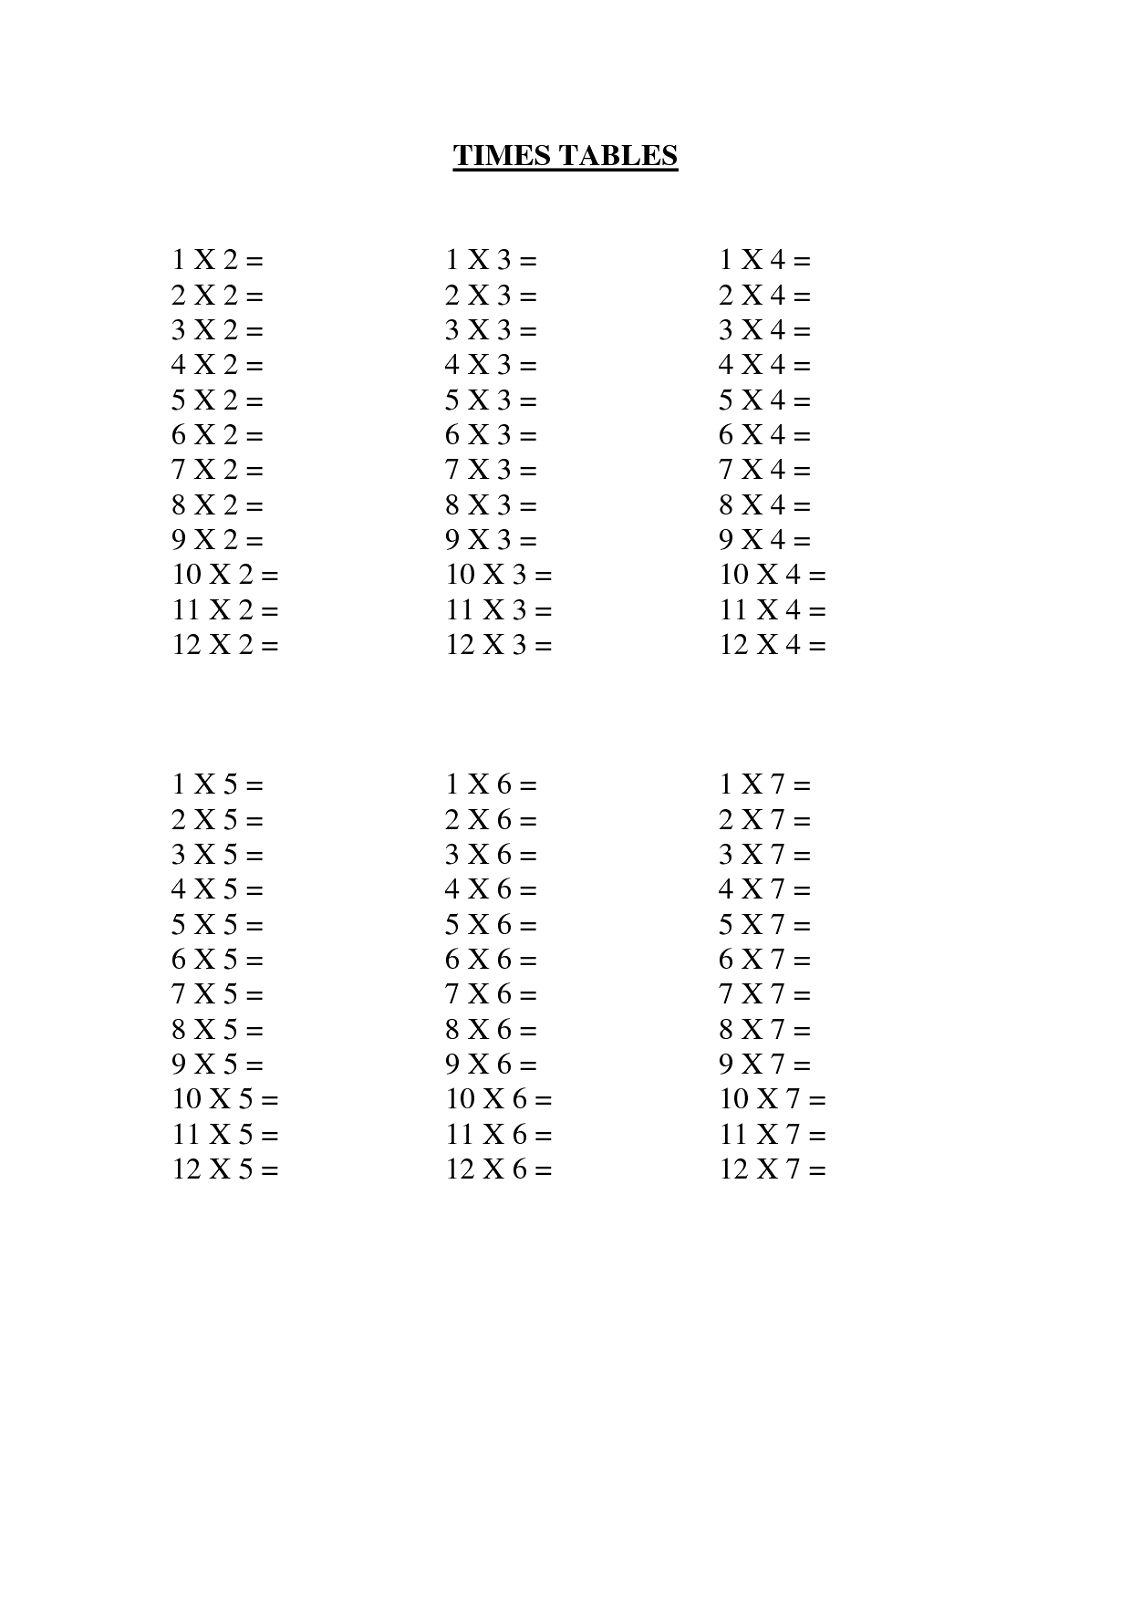 Multiplication Times Table Worksheet On Multiplication Of Integers Exercise Sheet